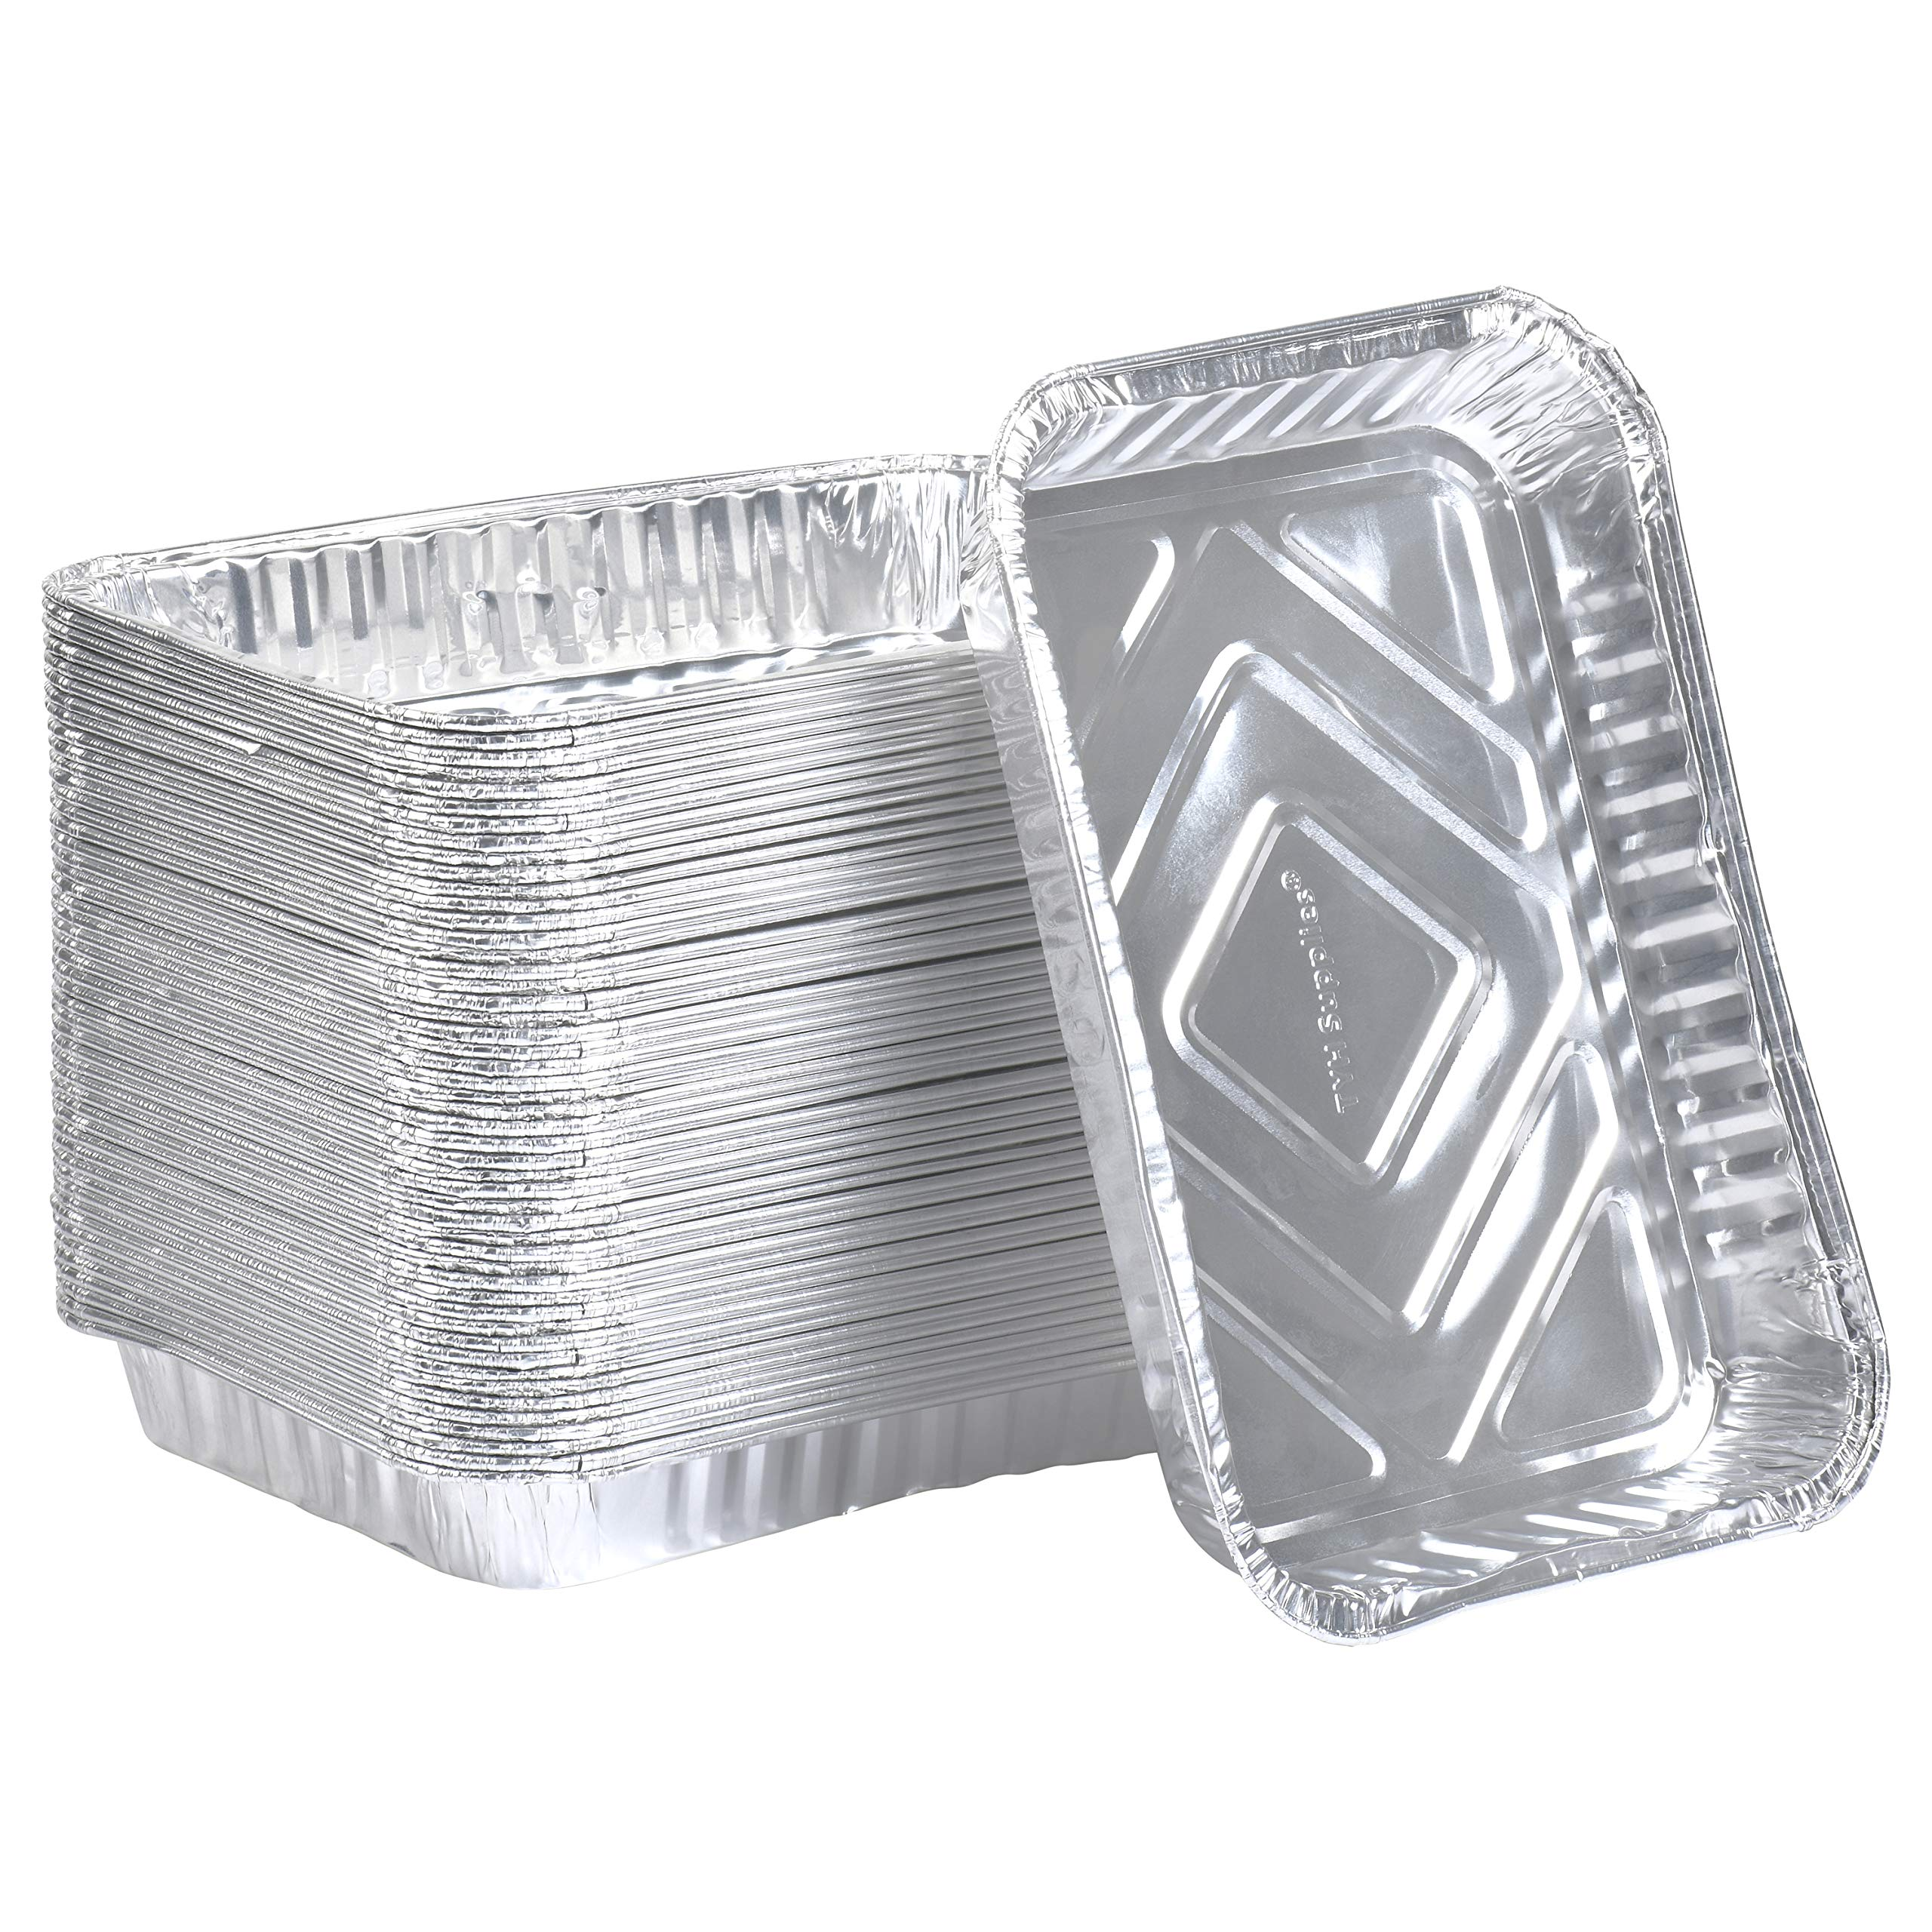 TYH Supplies 50-Pack Aluminum Foil BBQ Grease Drip Pans Compatible with Weber Grills Q, Pulse, Spirit, Spirit II, Genesis II LX 200 and 300 Series Gas Grill 7.5 x 5 Inch